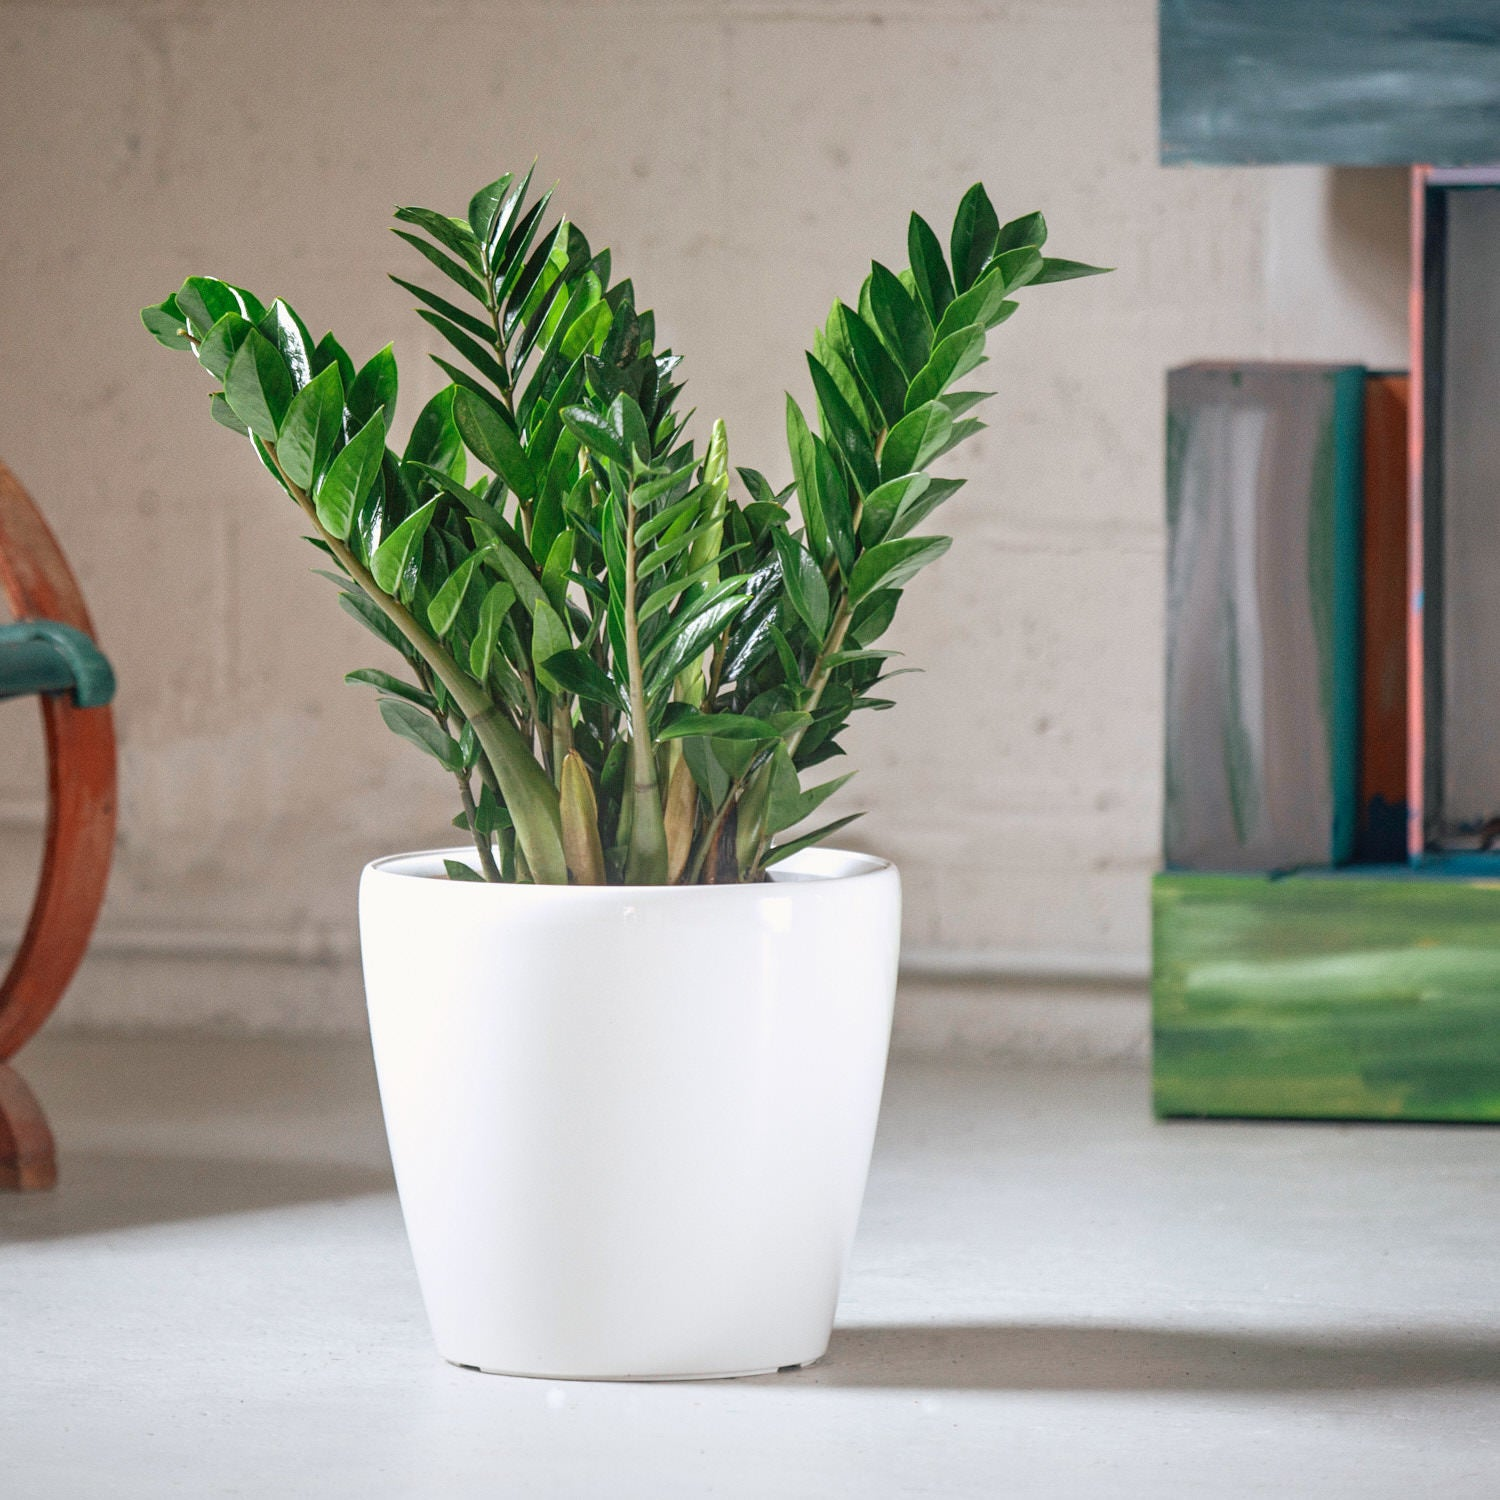 ZZ plant potted in Lechuza Classico white planter - My City Plants